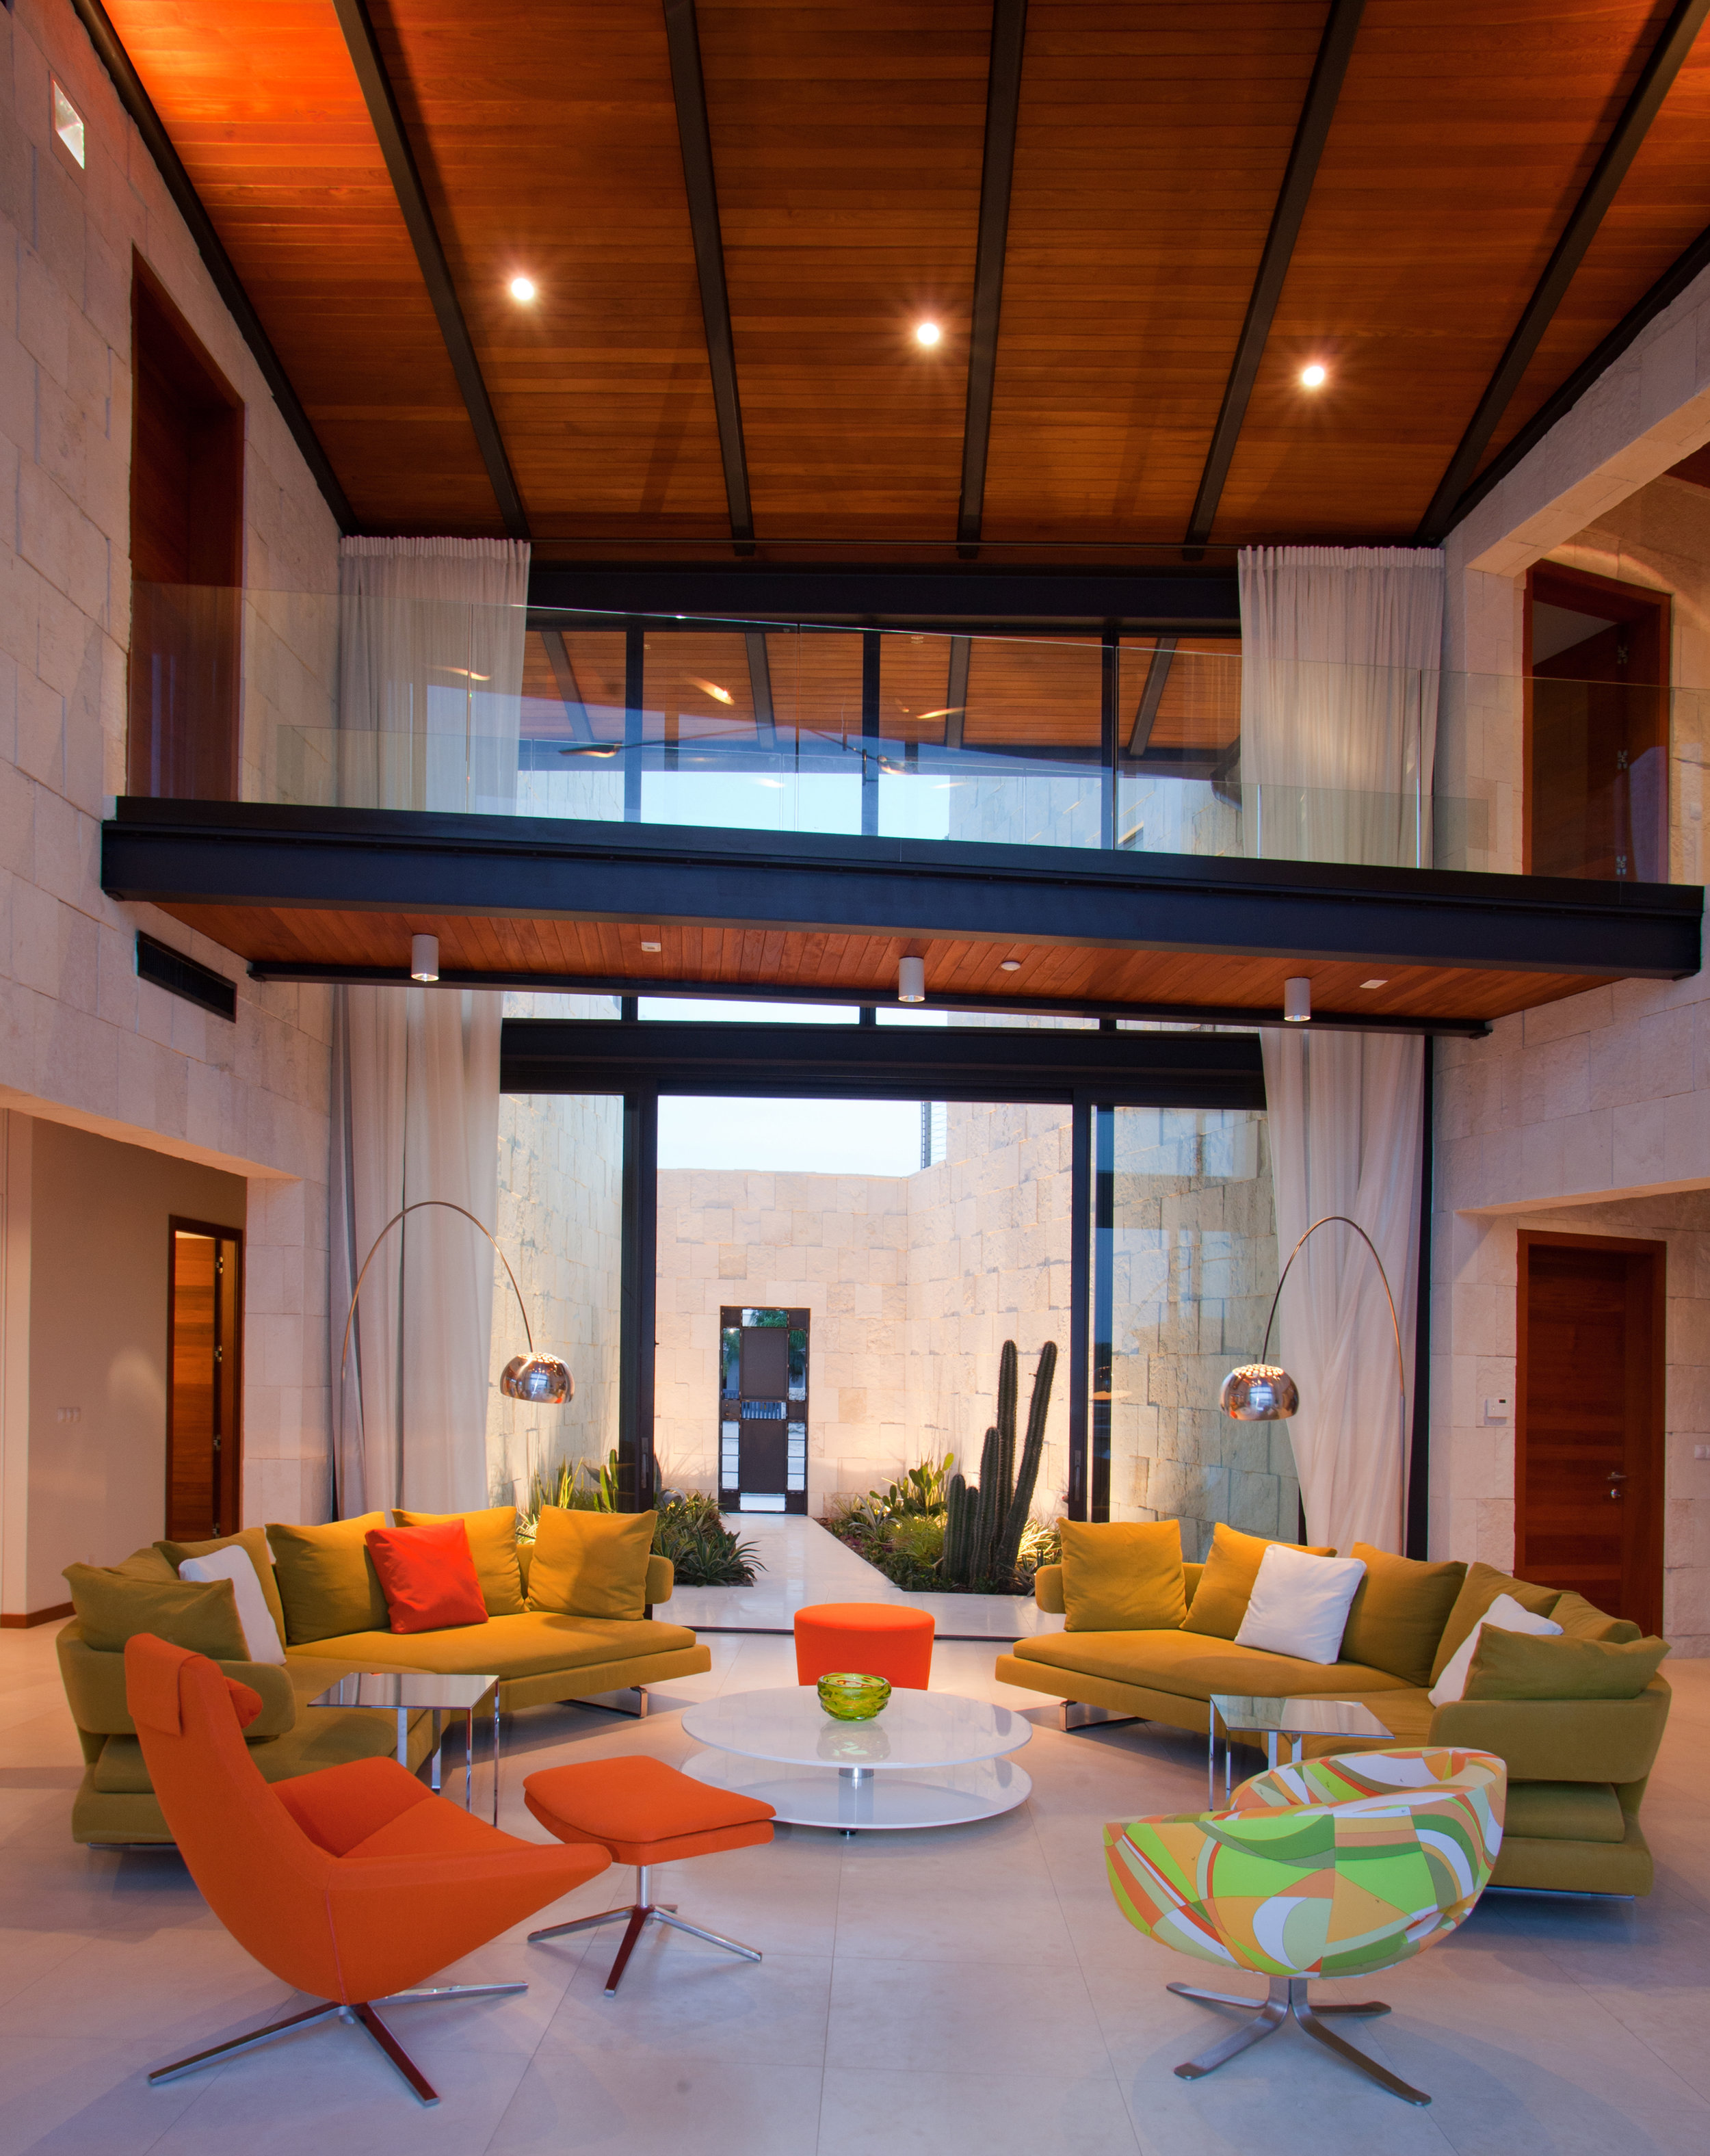 Bonaire Residence by Silberstein Architects Photo by Robin Hill (c) HI RES (66).jpg